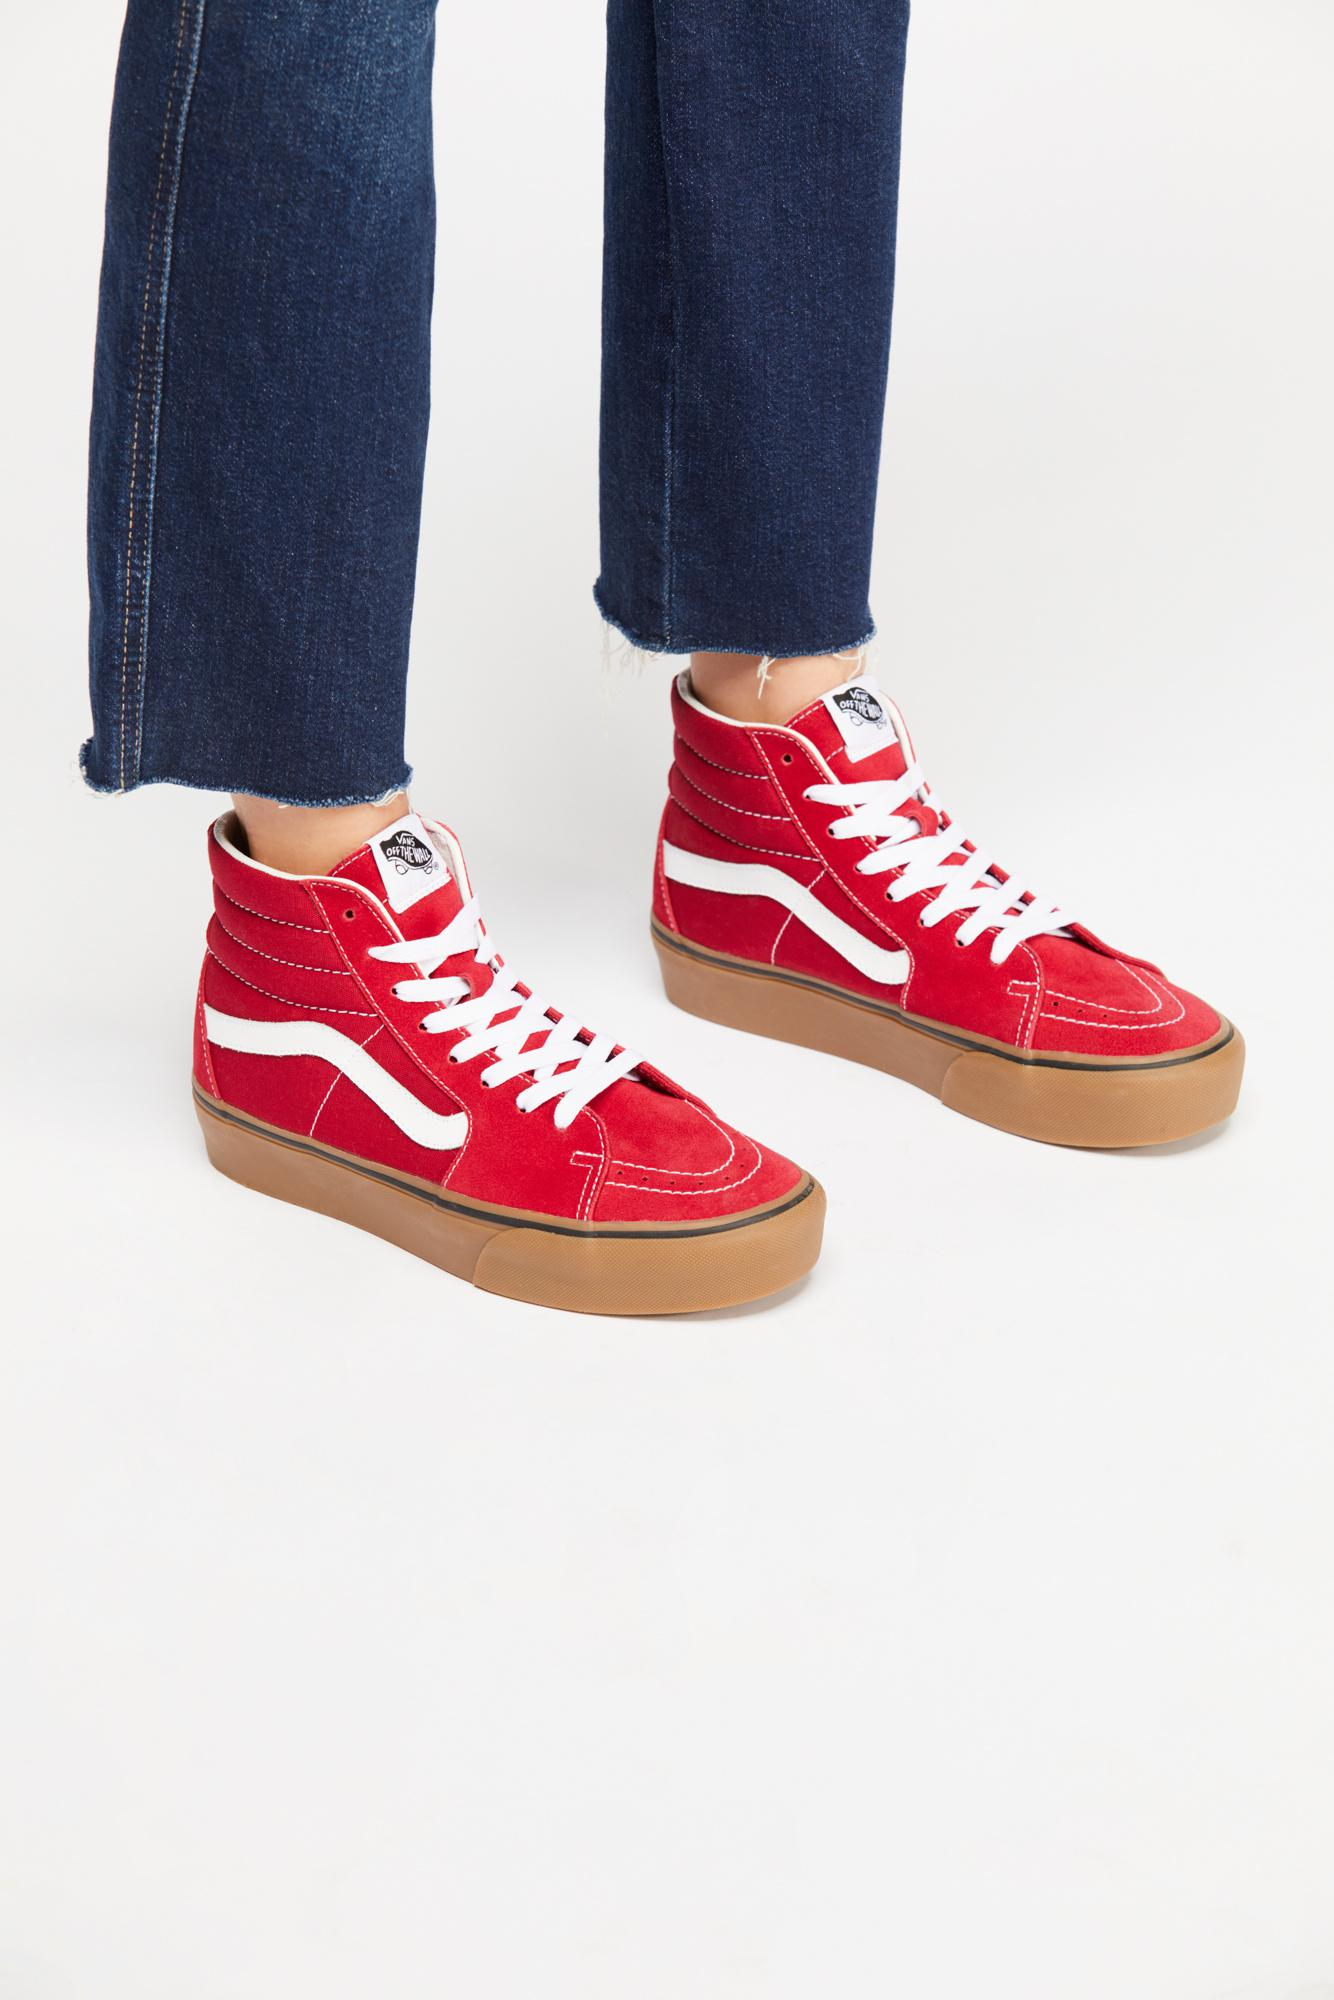 659abfae0a Free People Sk8-hi Platform 2.0 Trainers By Vans in Red - Lyst